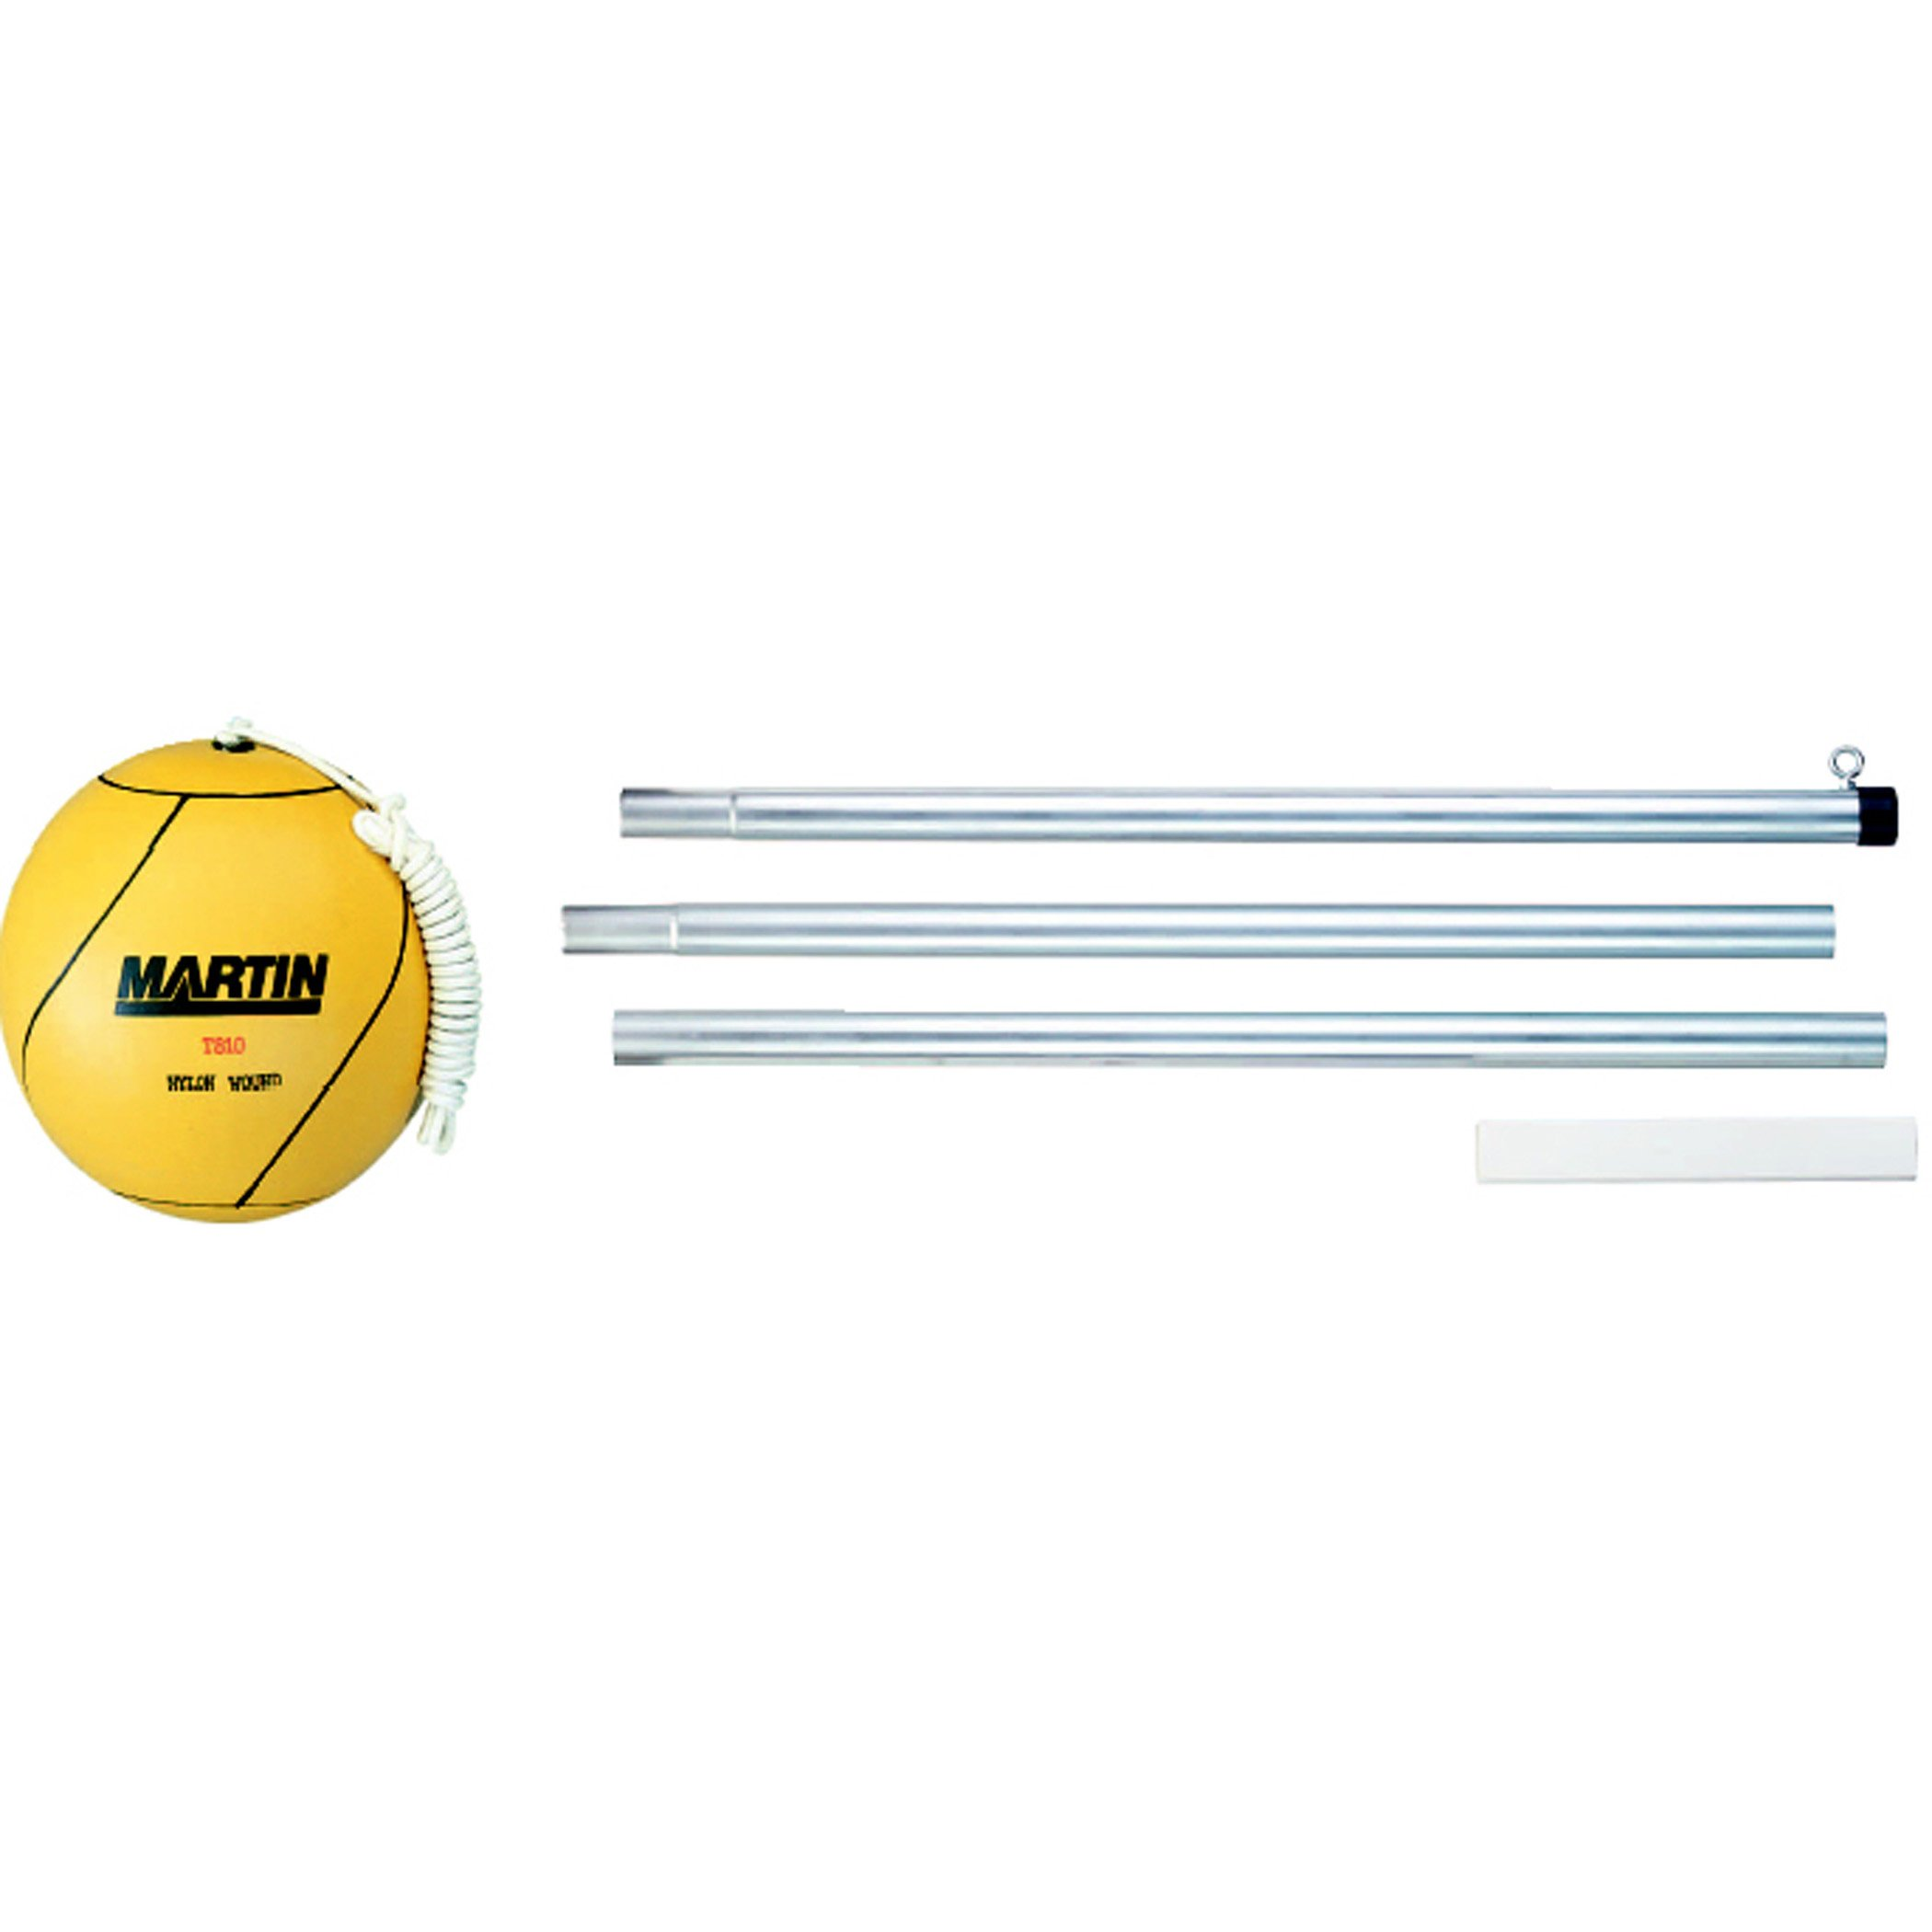 Dick Martin Sports MAST810 Tetherball Grade Kindergarten to 1, 4.4000000000000004'' Height, 5.6'' Wide, 9.6999999999999993'' Length